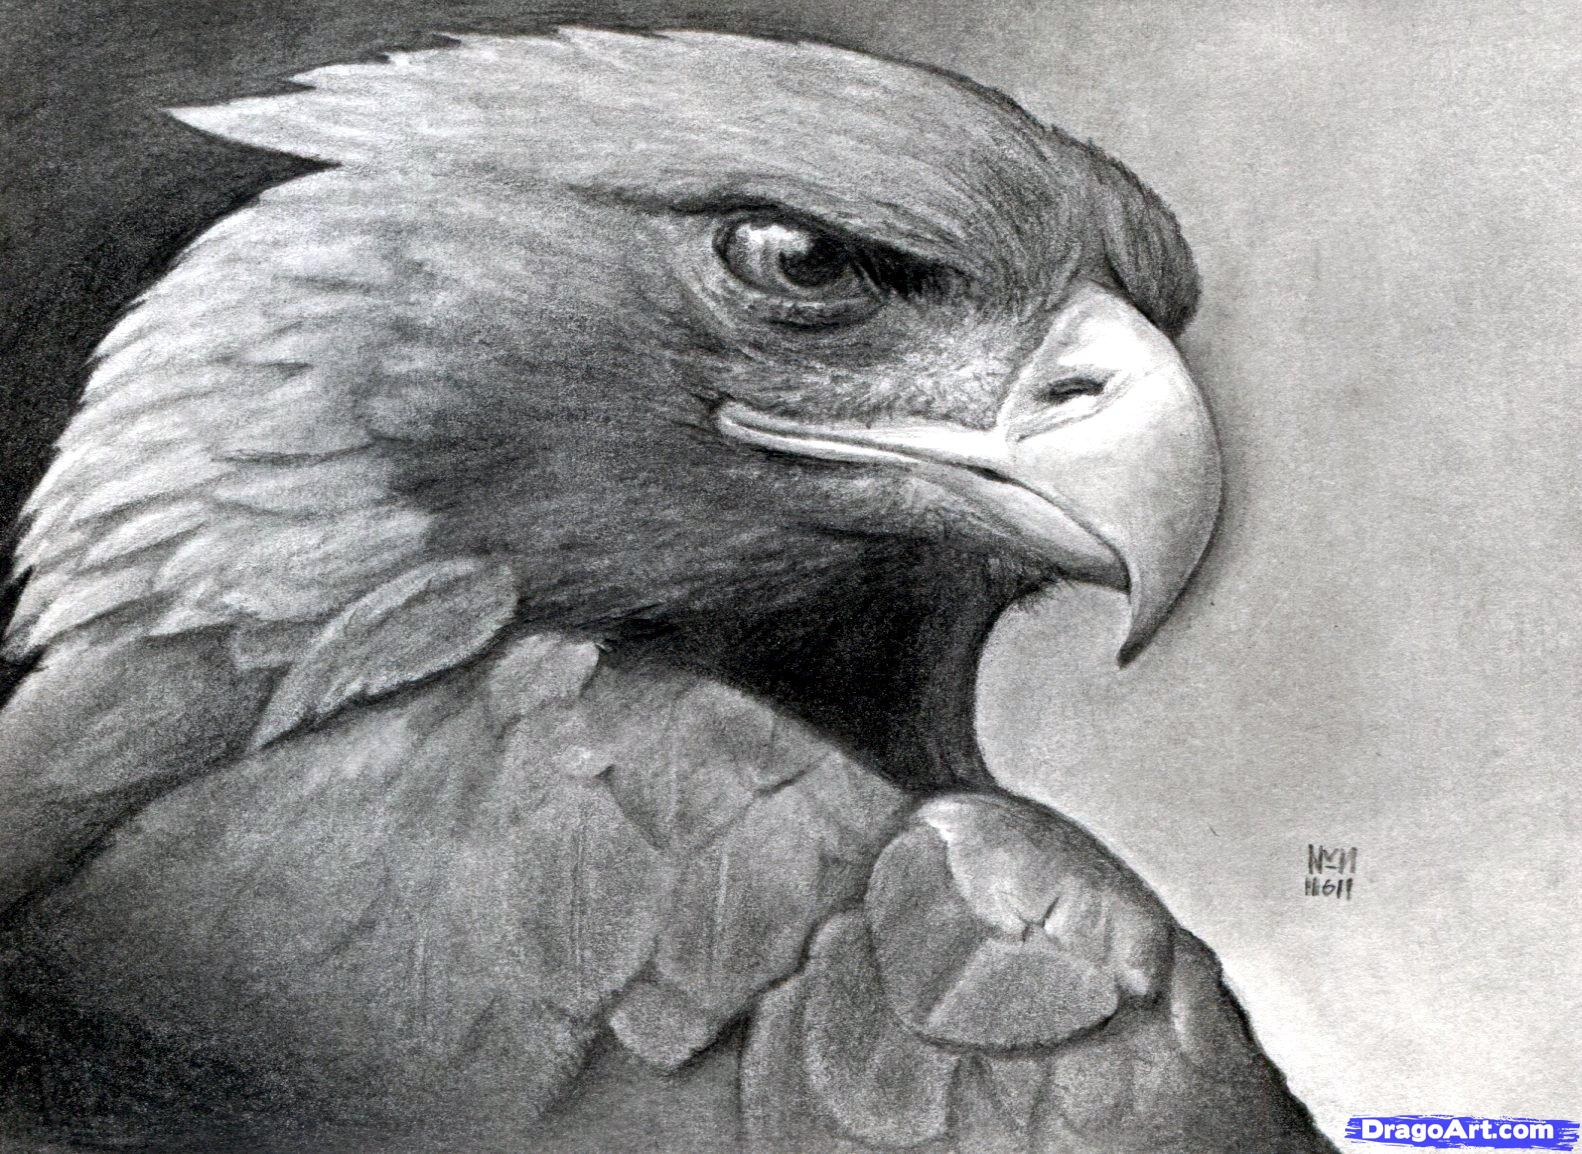 Drawn reptile eagle head front Draw Realistic a to to